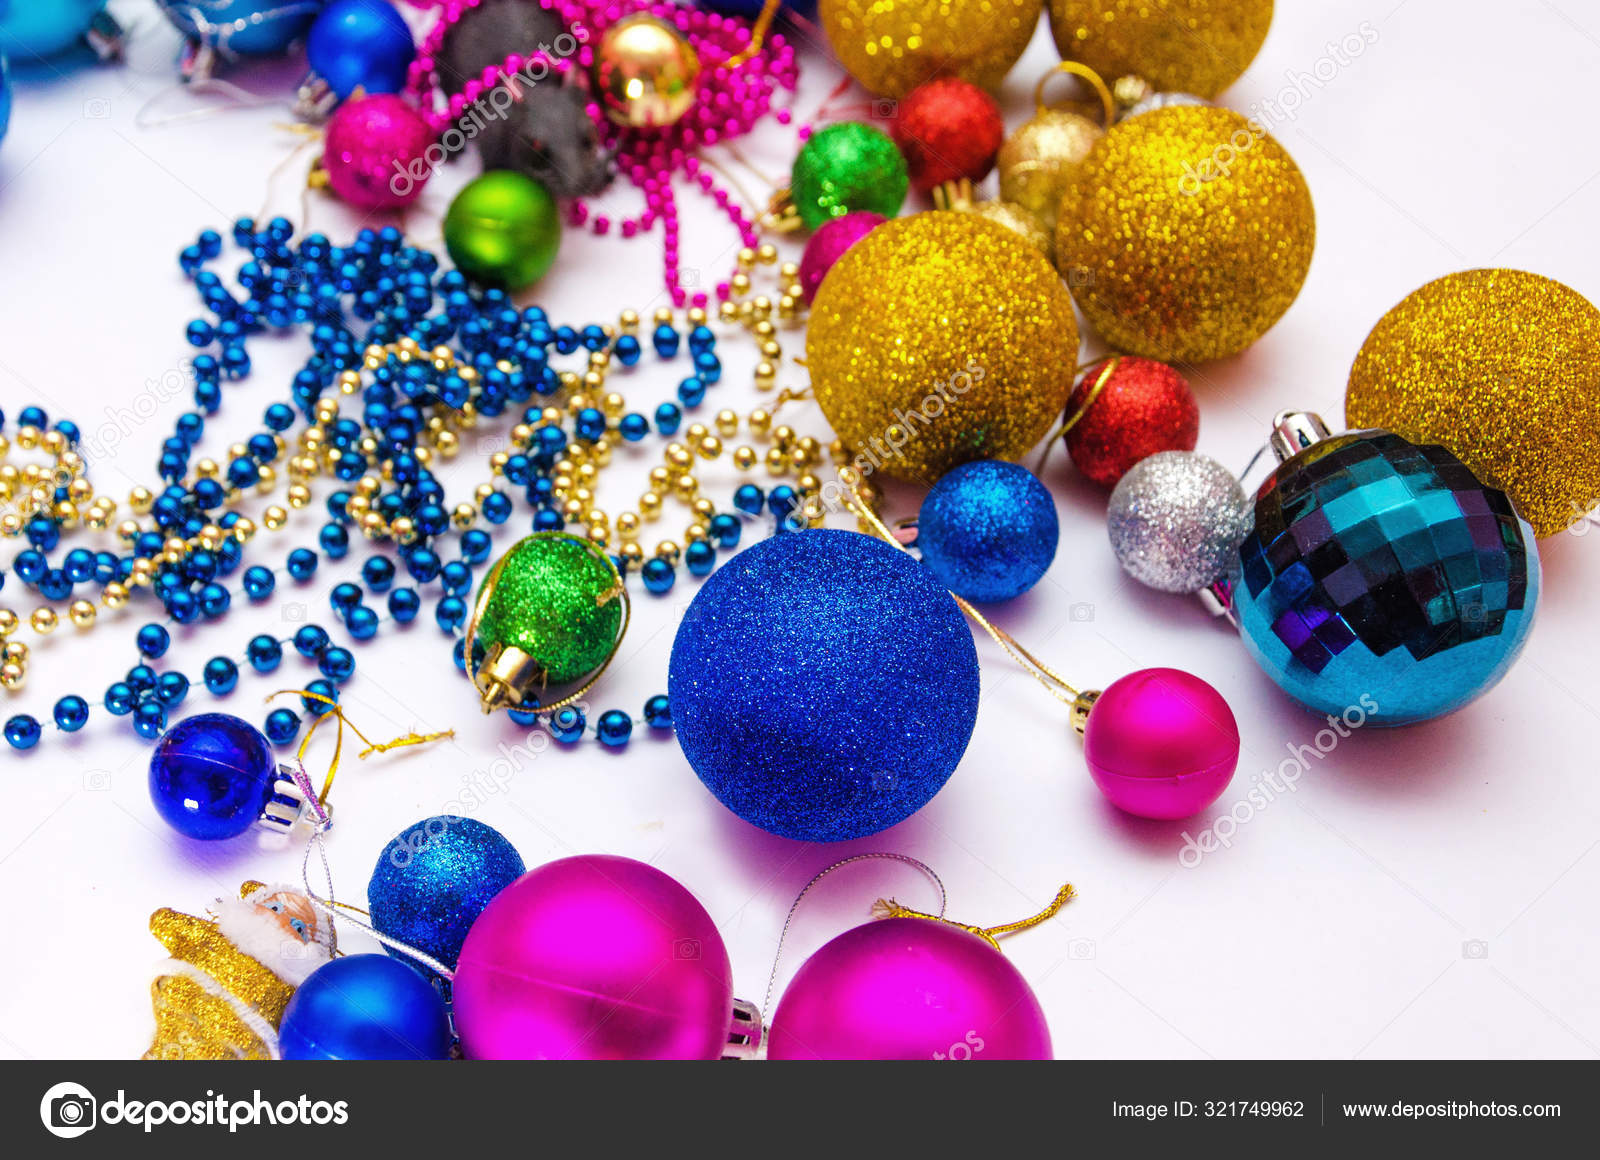 Colorful Christmas Decorations Scattered White Background Preparation Decorating Christmas Tree Stock Photo Image By C R79oleg 321749962